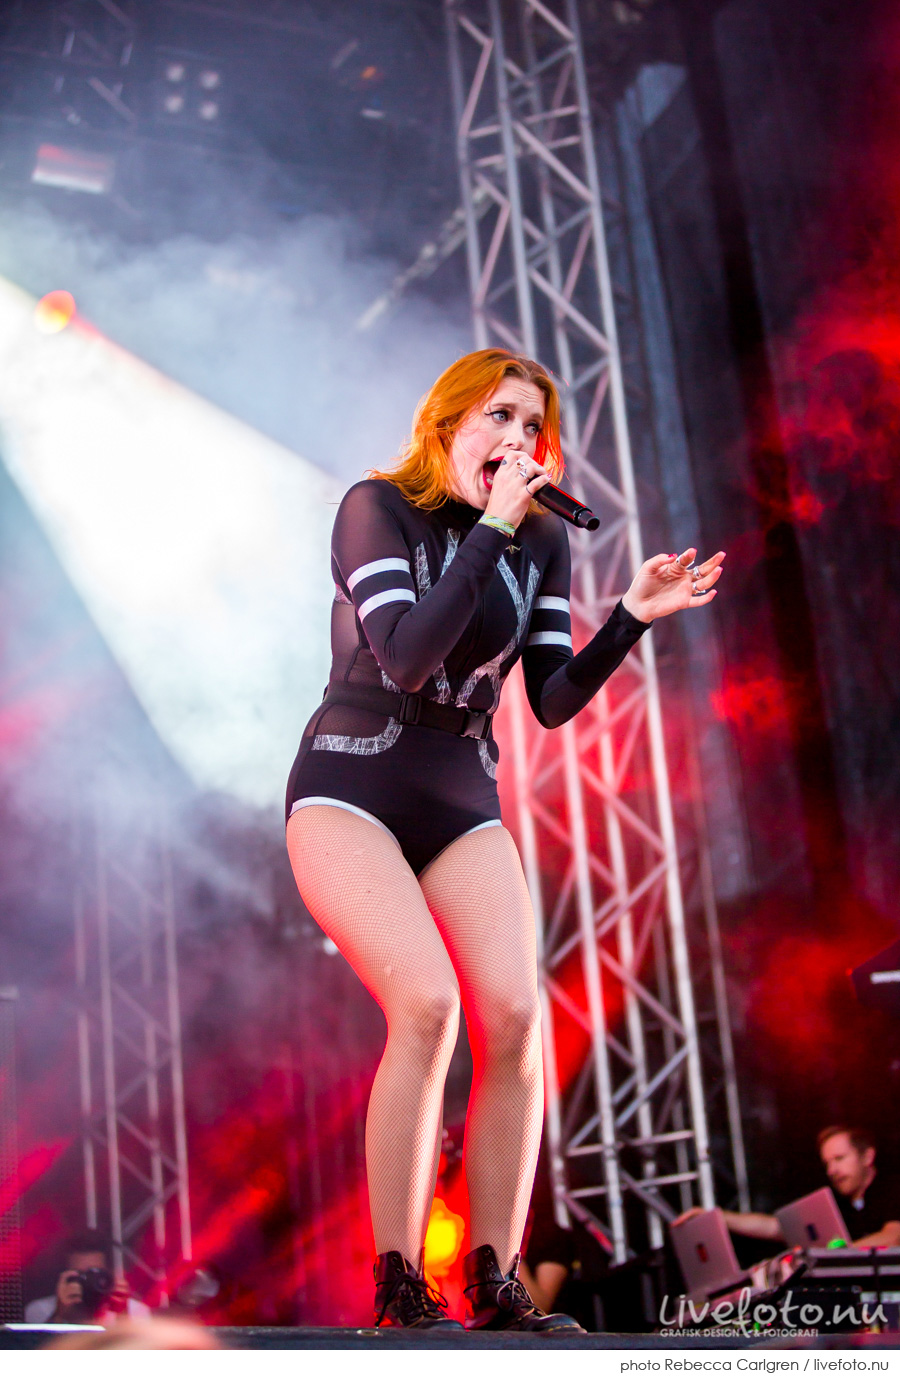 140808-Icona-pop-Foto-Rebecca-Carlgren-livefoto-nu-photo--13